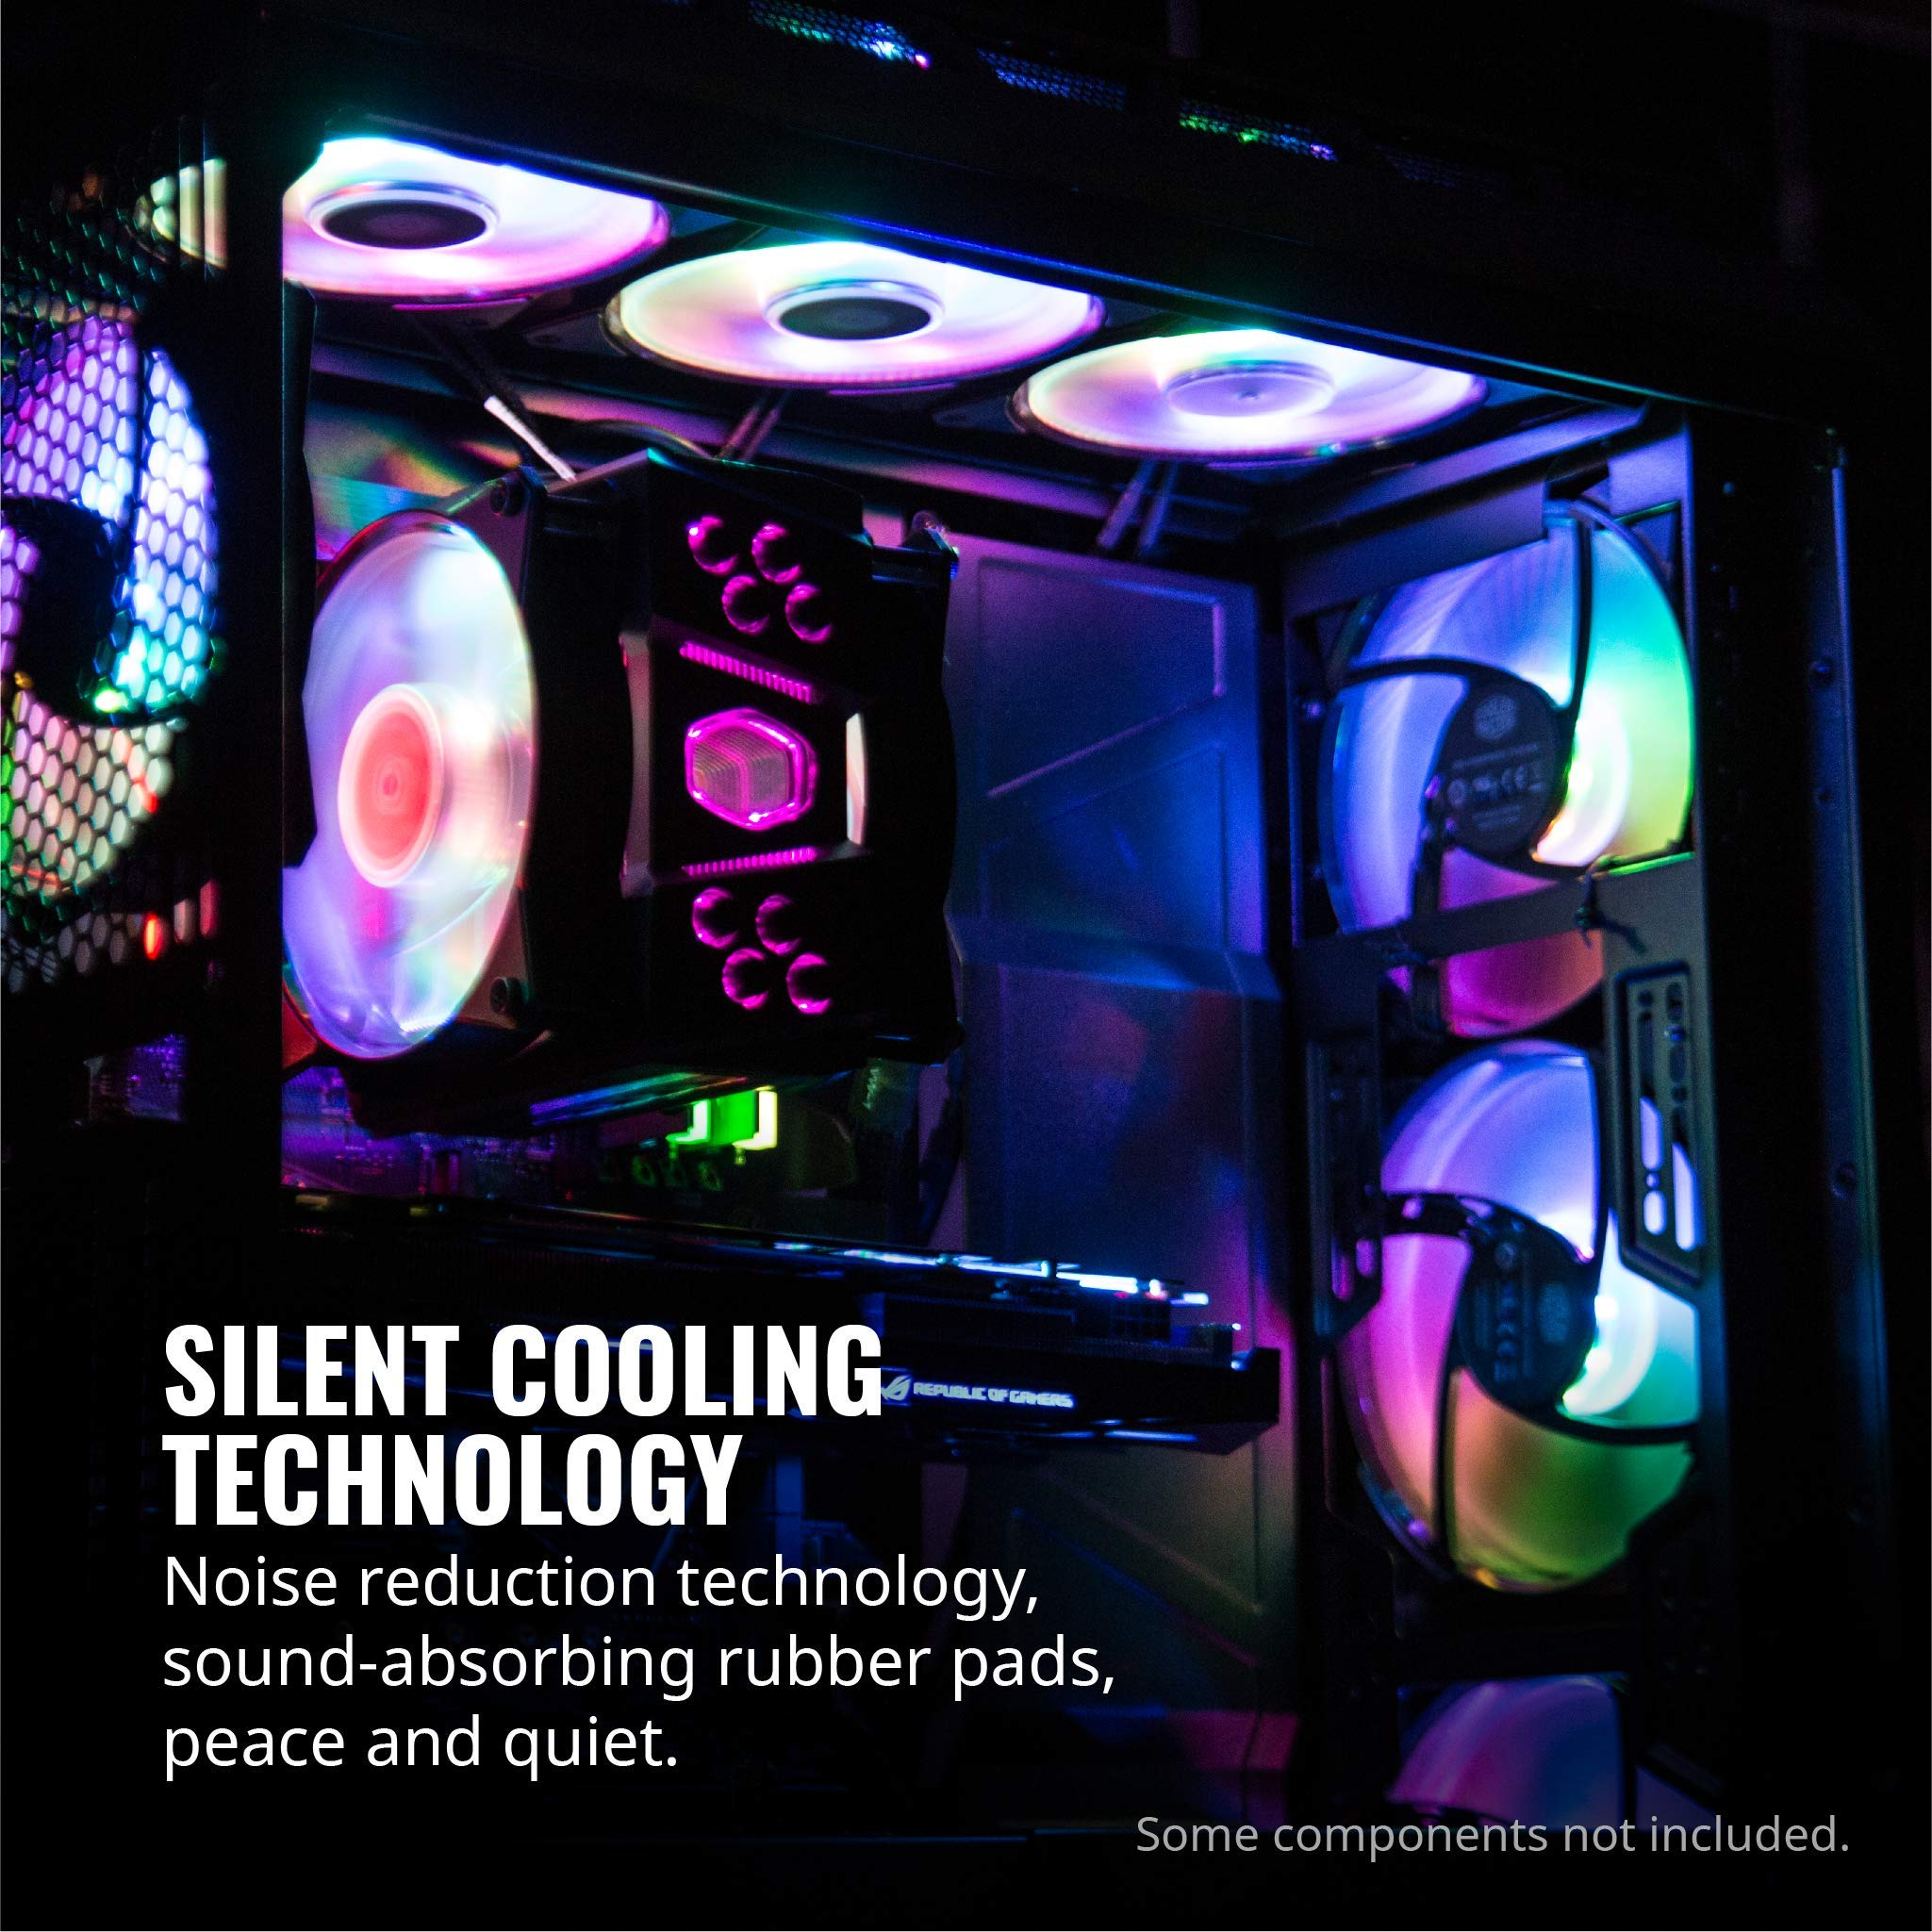 Cooler Master R4-120R-203C-R1 Master Fan MF120R- 120mm Air Balance Addressable ARGB 3in1 Case Fans Computer Cases CPU Coolers and Radiators by Cooler Master (Image #5)